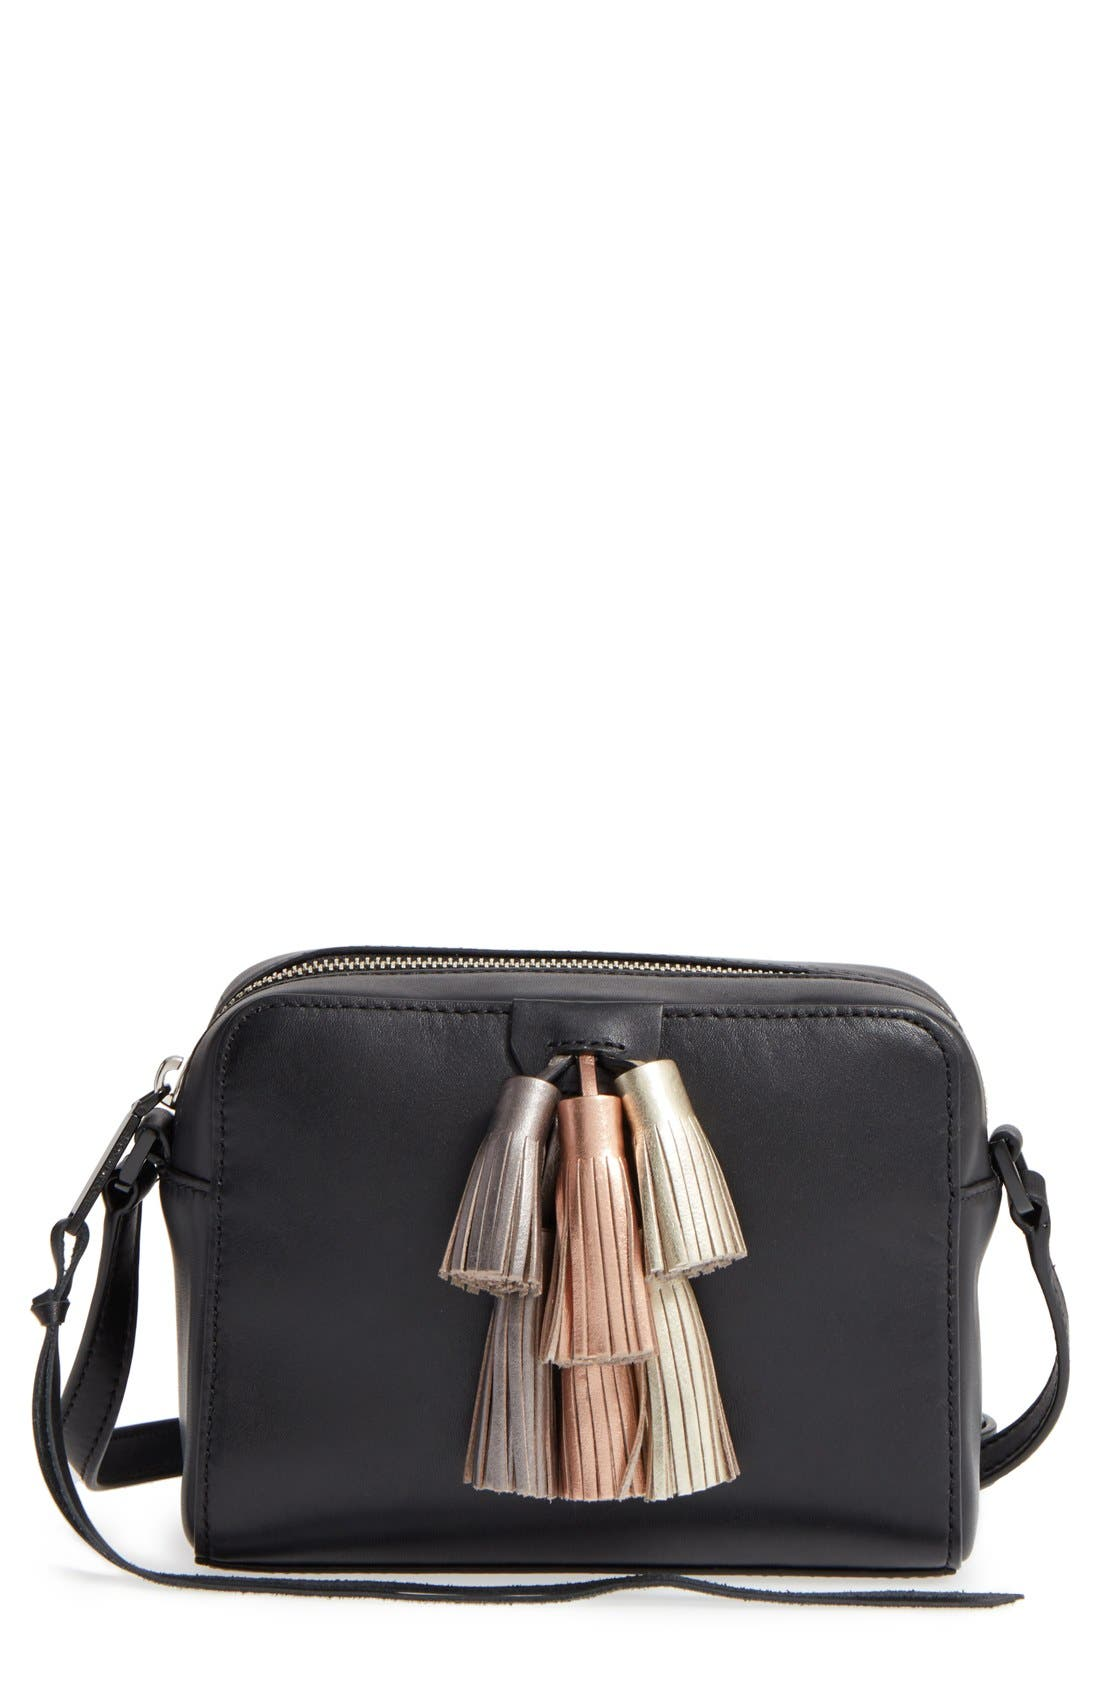 Alternate Image 1 Selected - Rebecca Minkoff 'Mini Sofia' Crossbody Bag